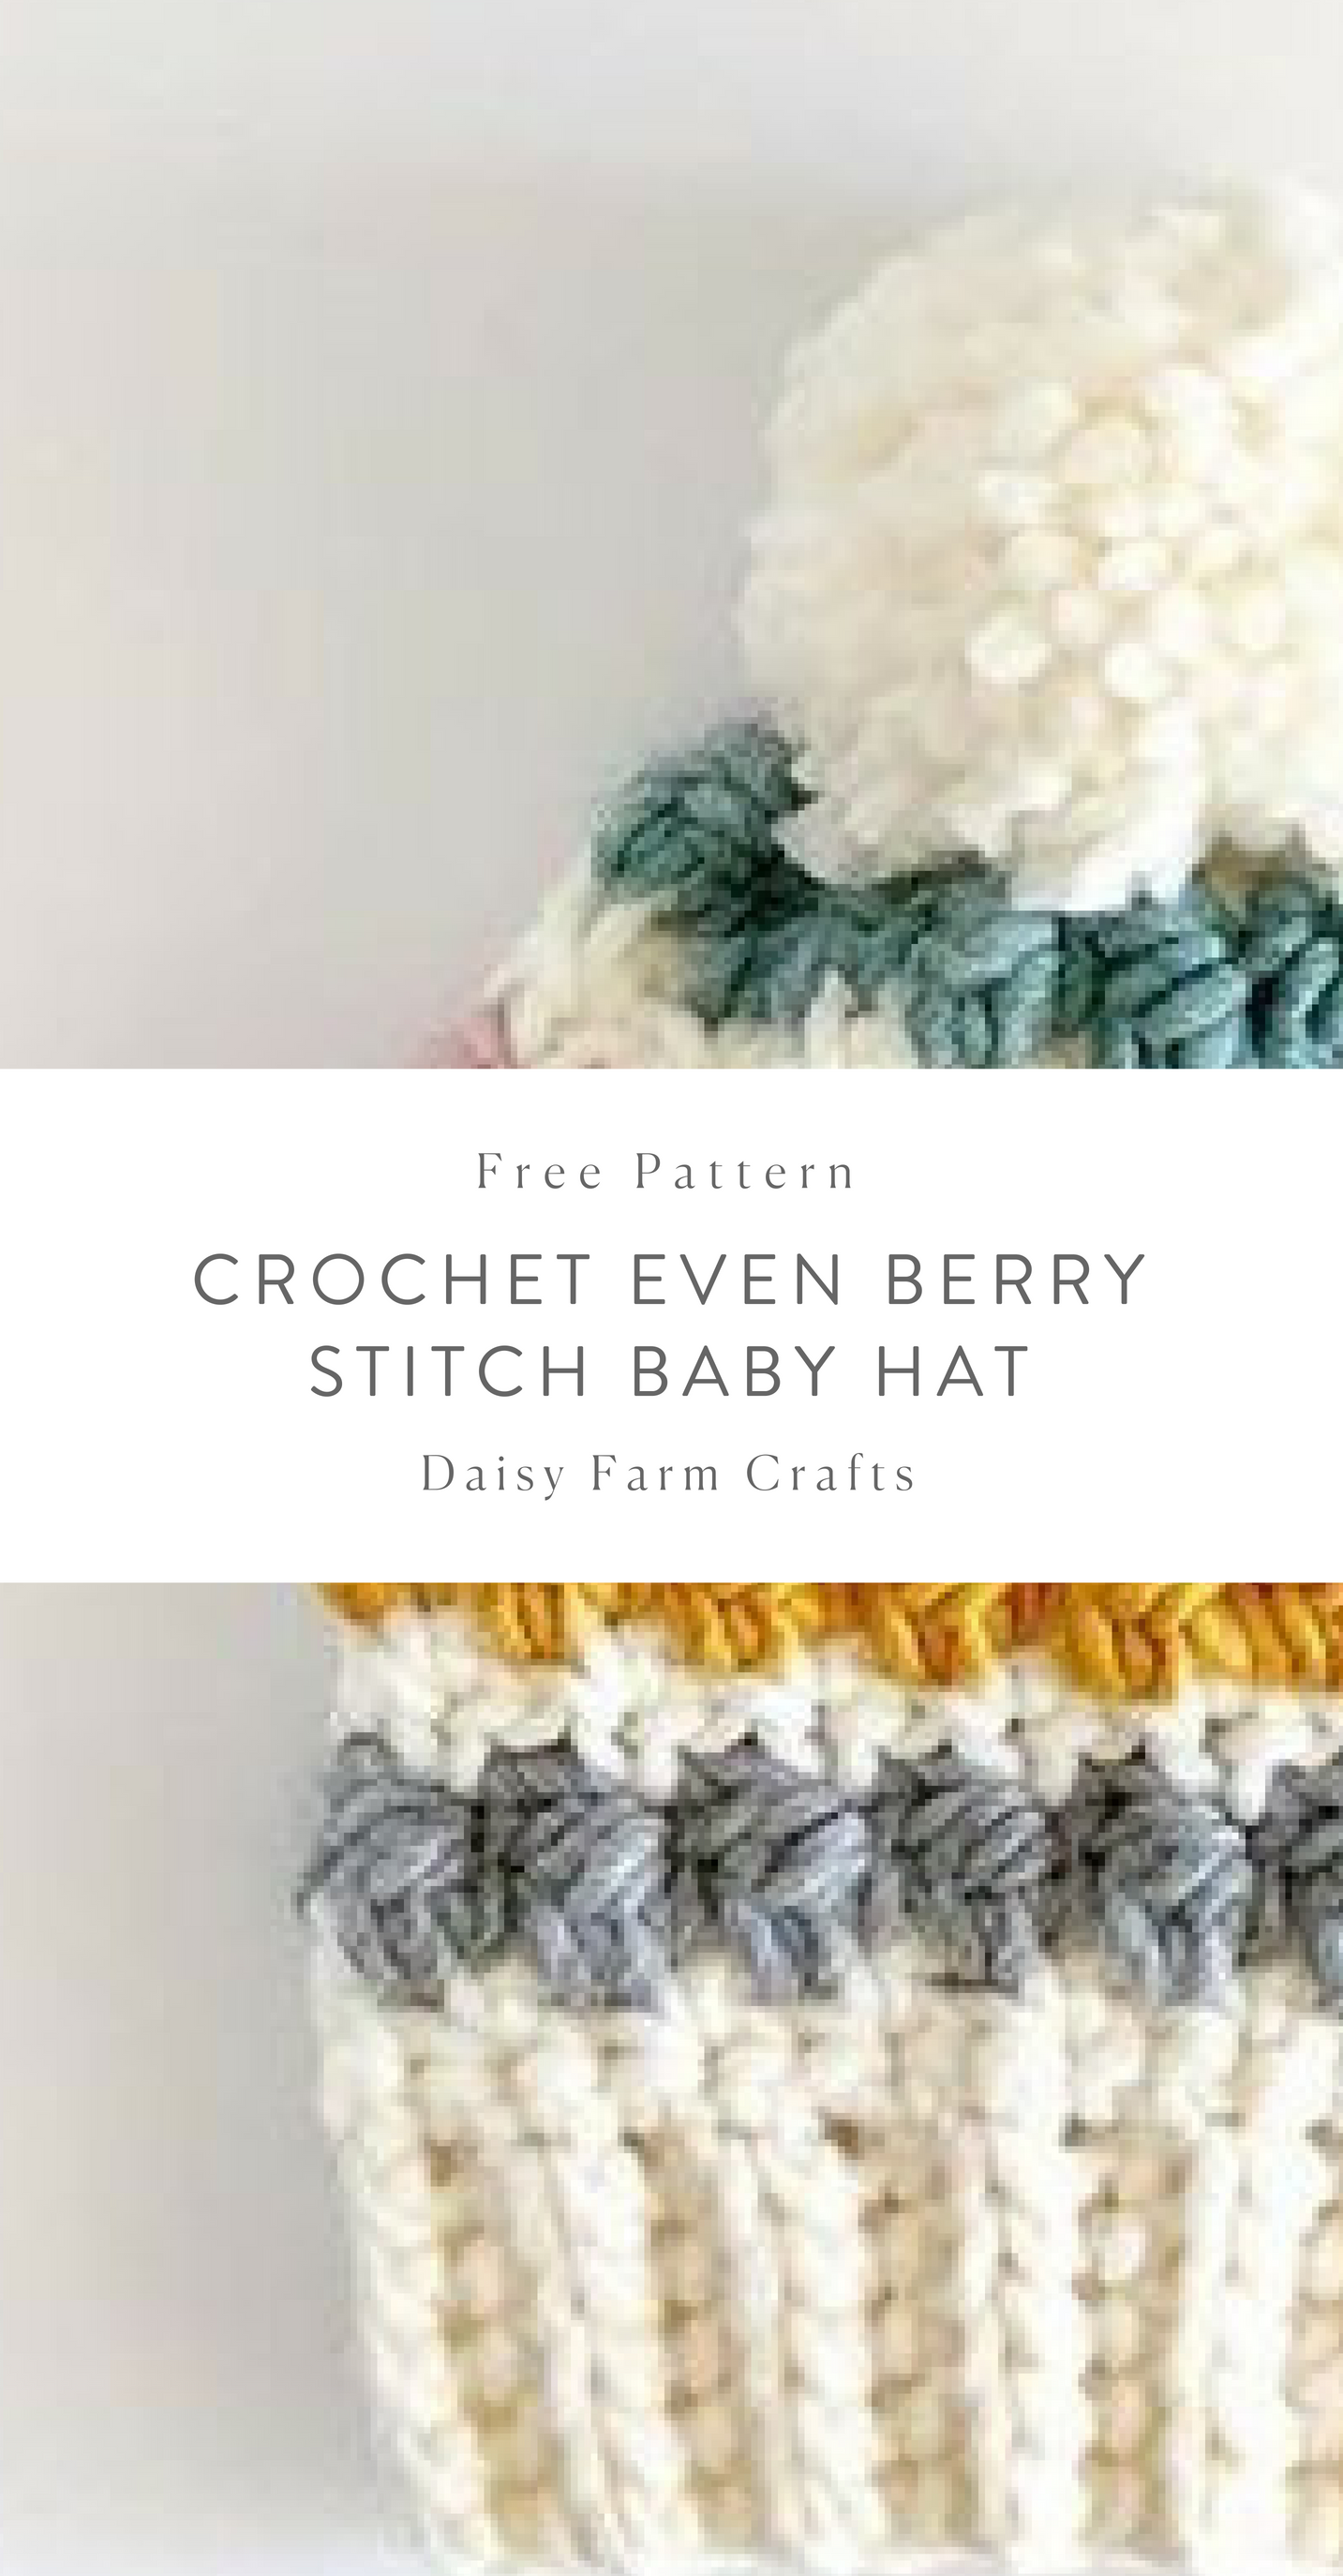 Free Pattern - Crochet Even Berry Stitch Baby Hat #crochet | Crochet ...